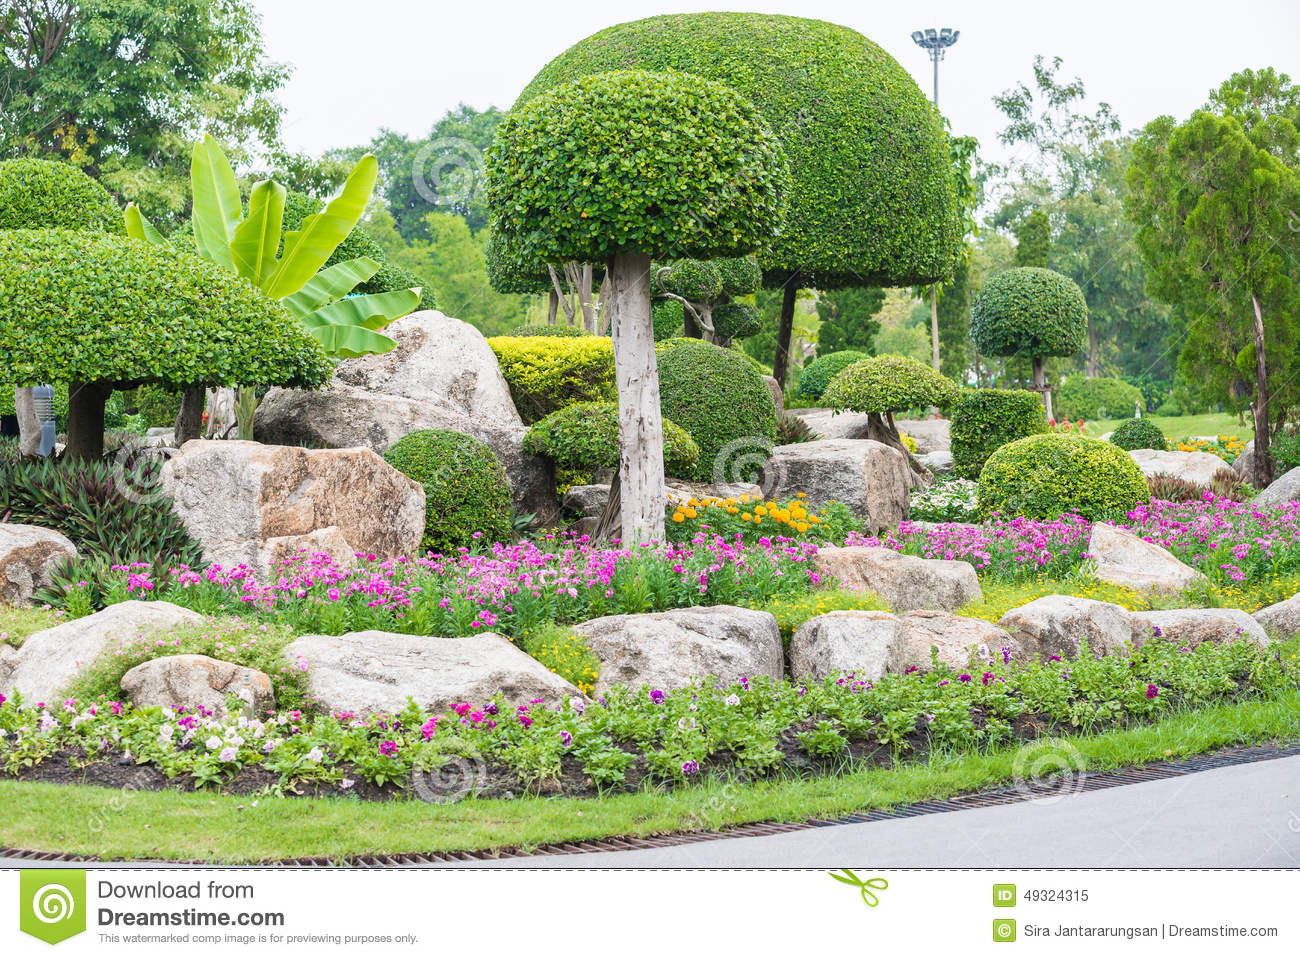 Gardening and landscaping with decorative trees stock for In a garden 26 trees are planted